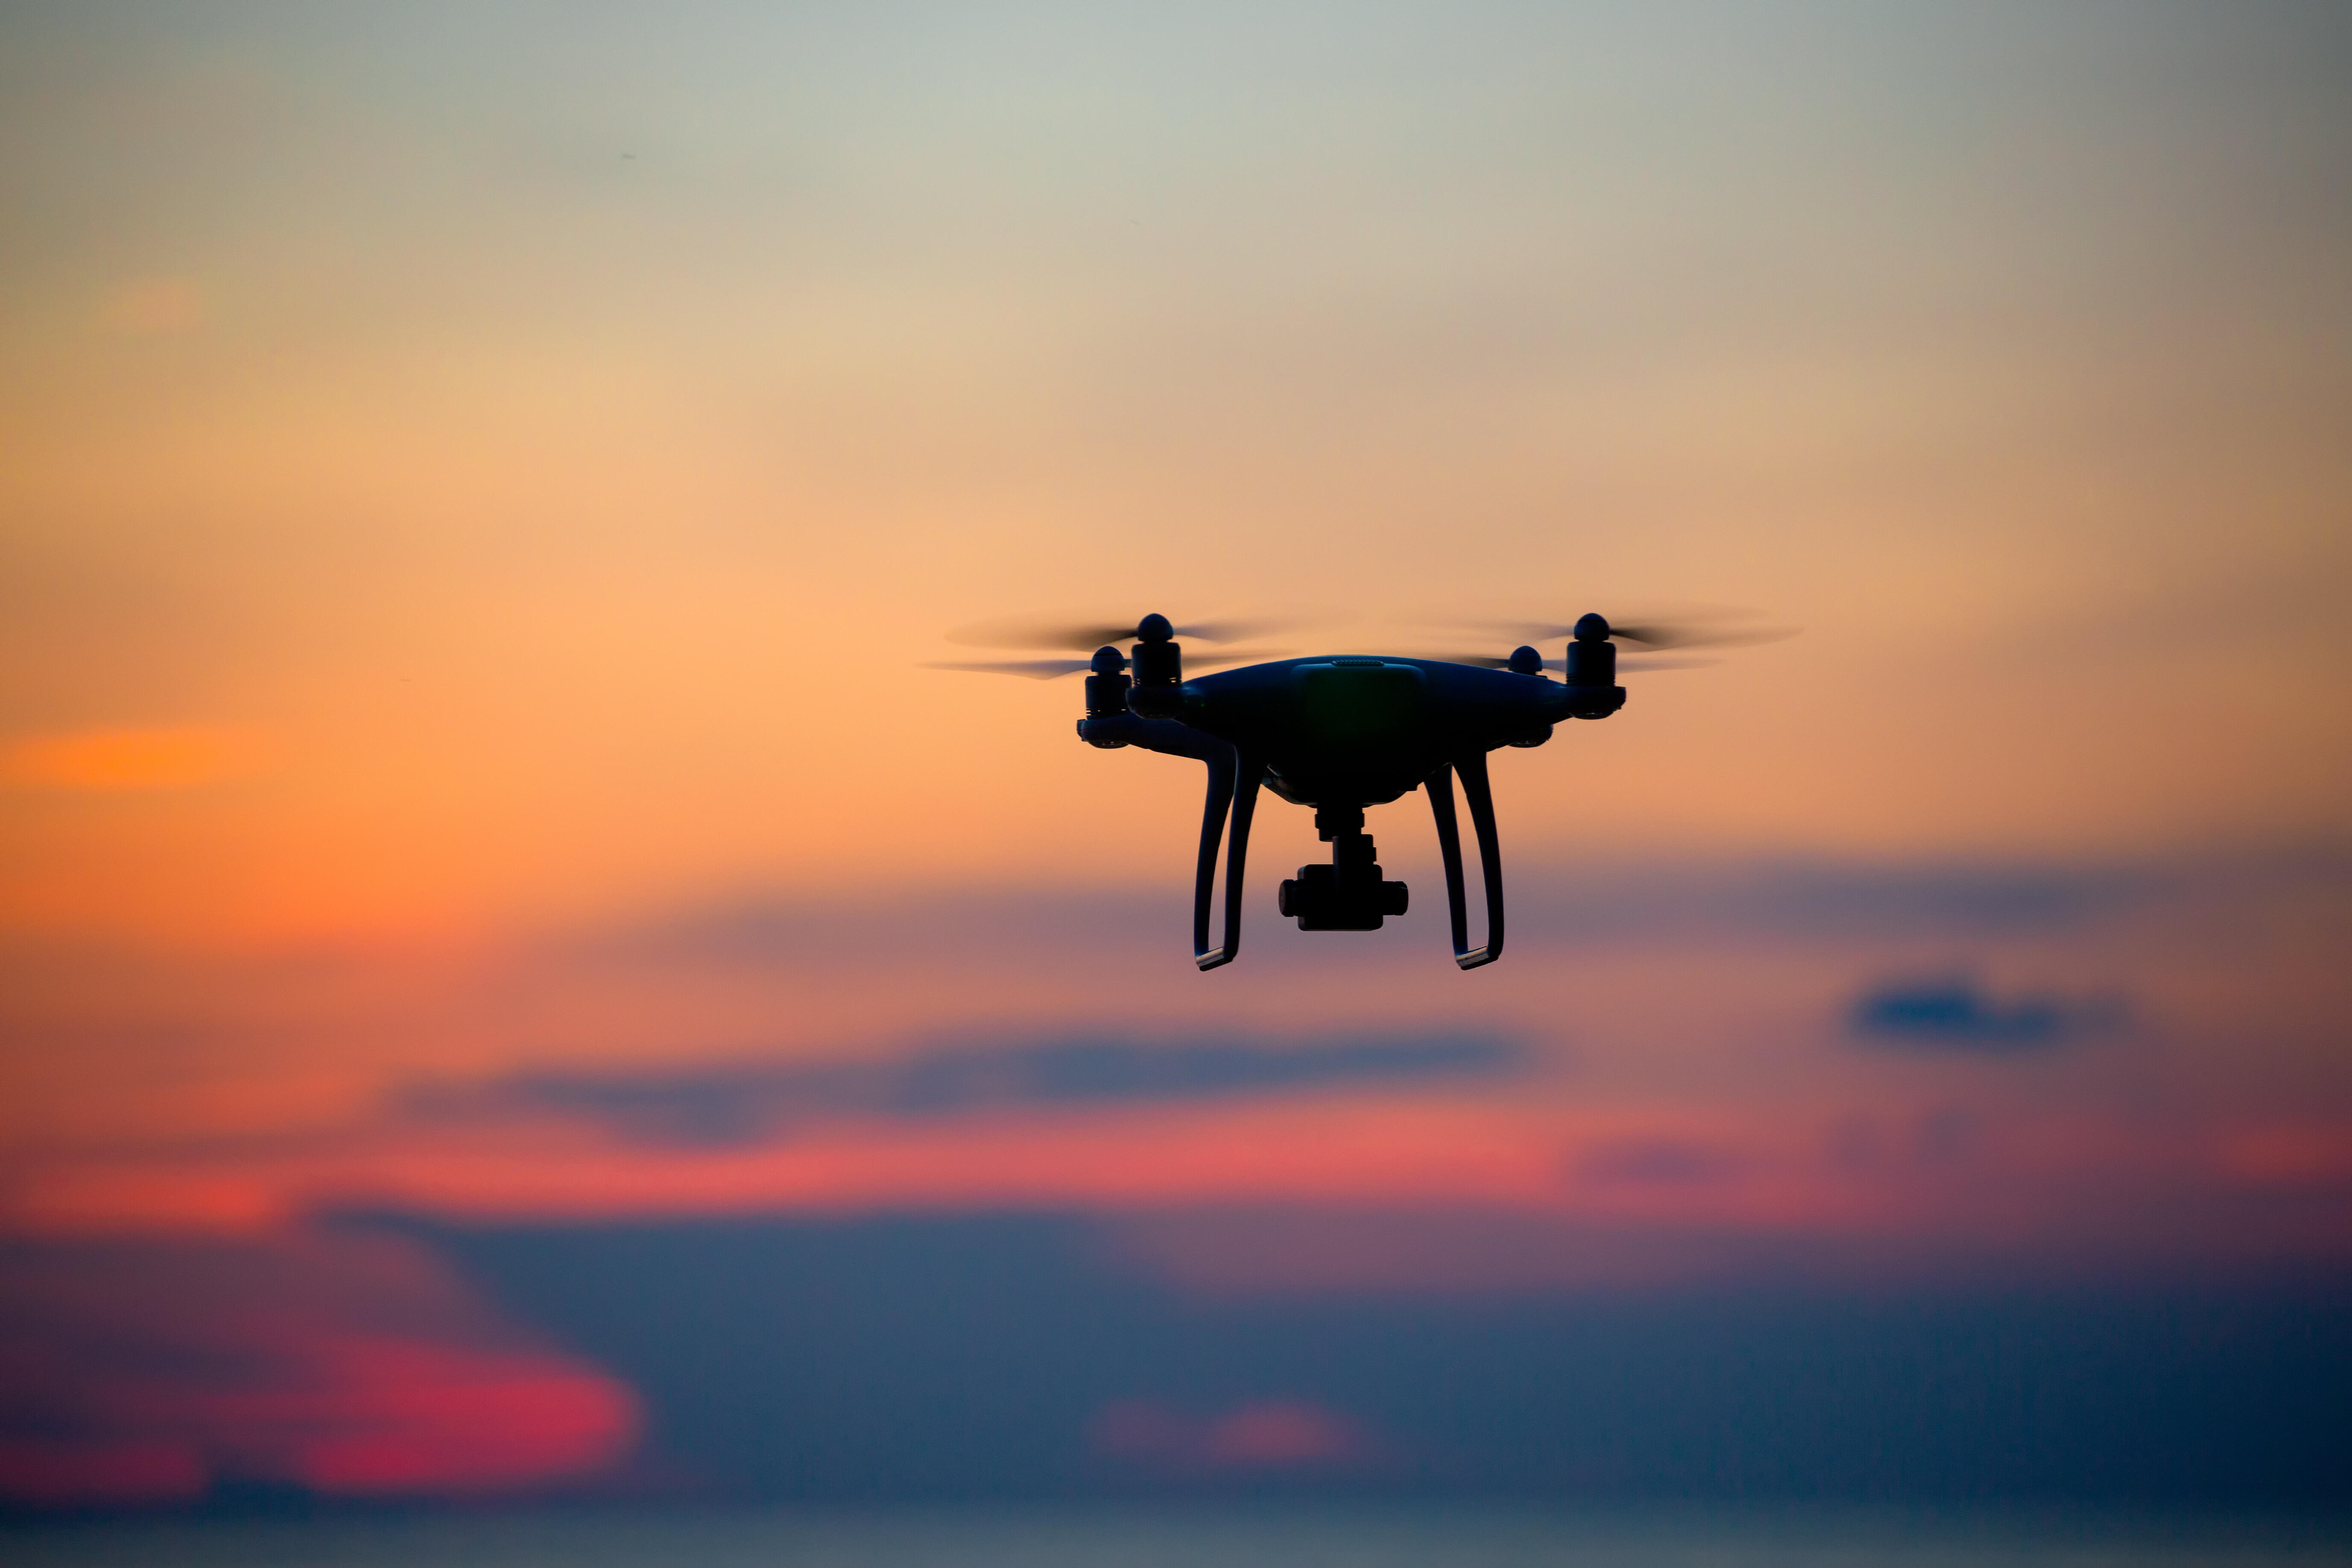 drone-gettyimages-959242024.jpg